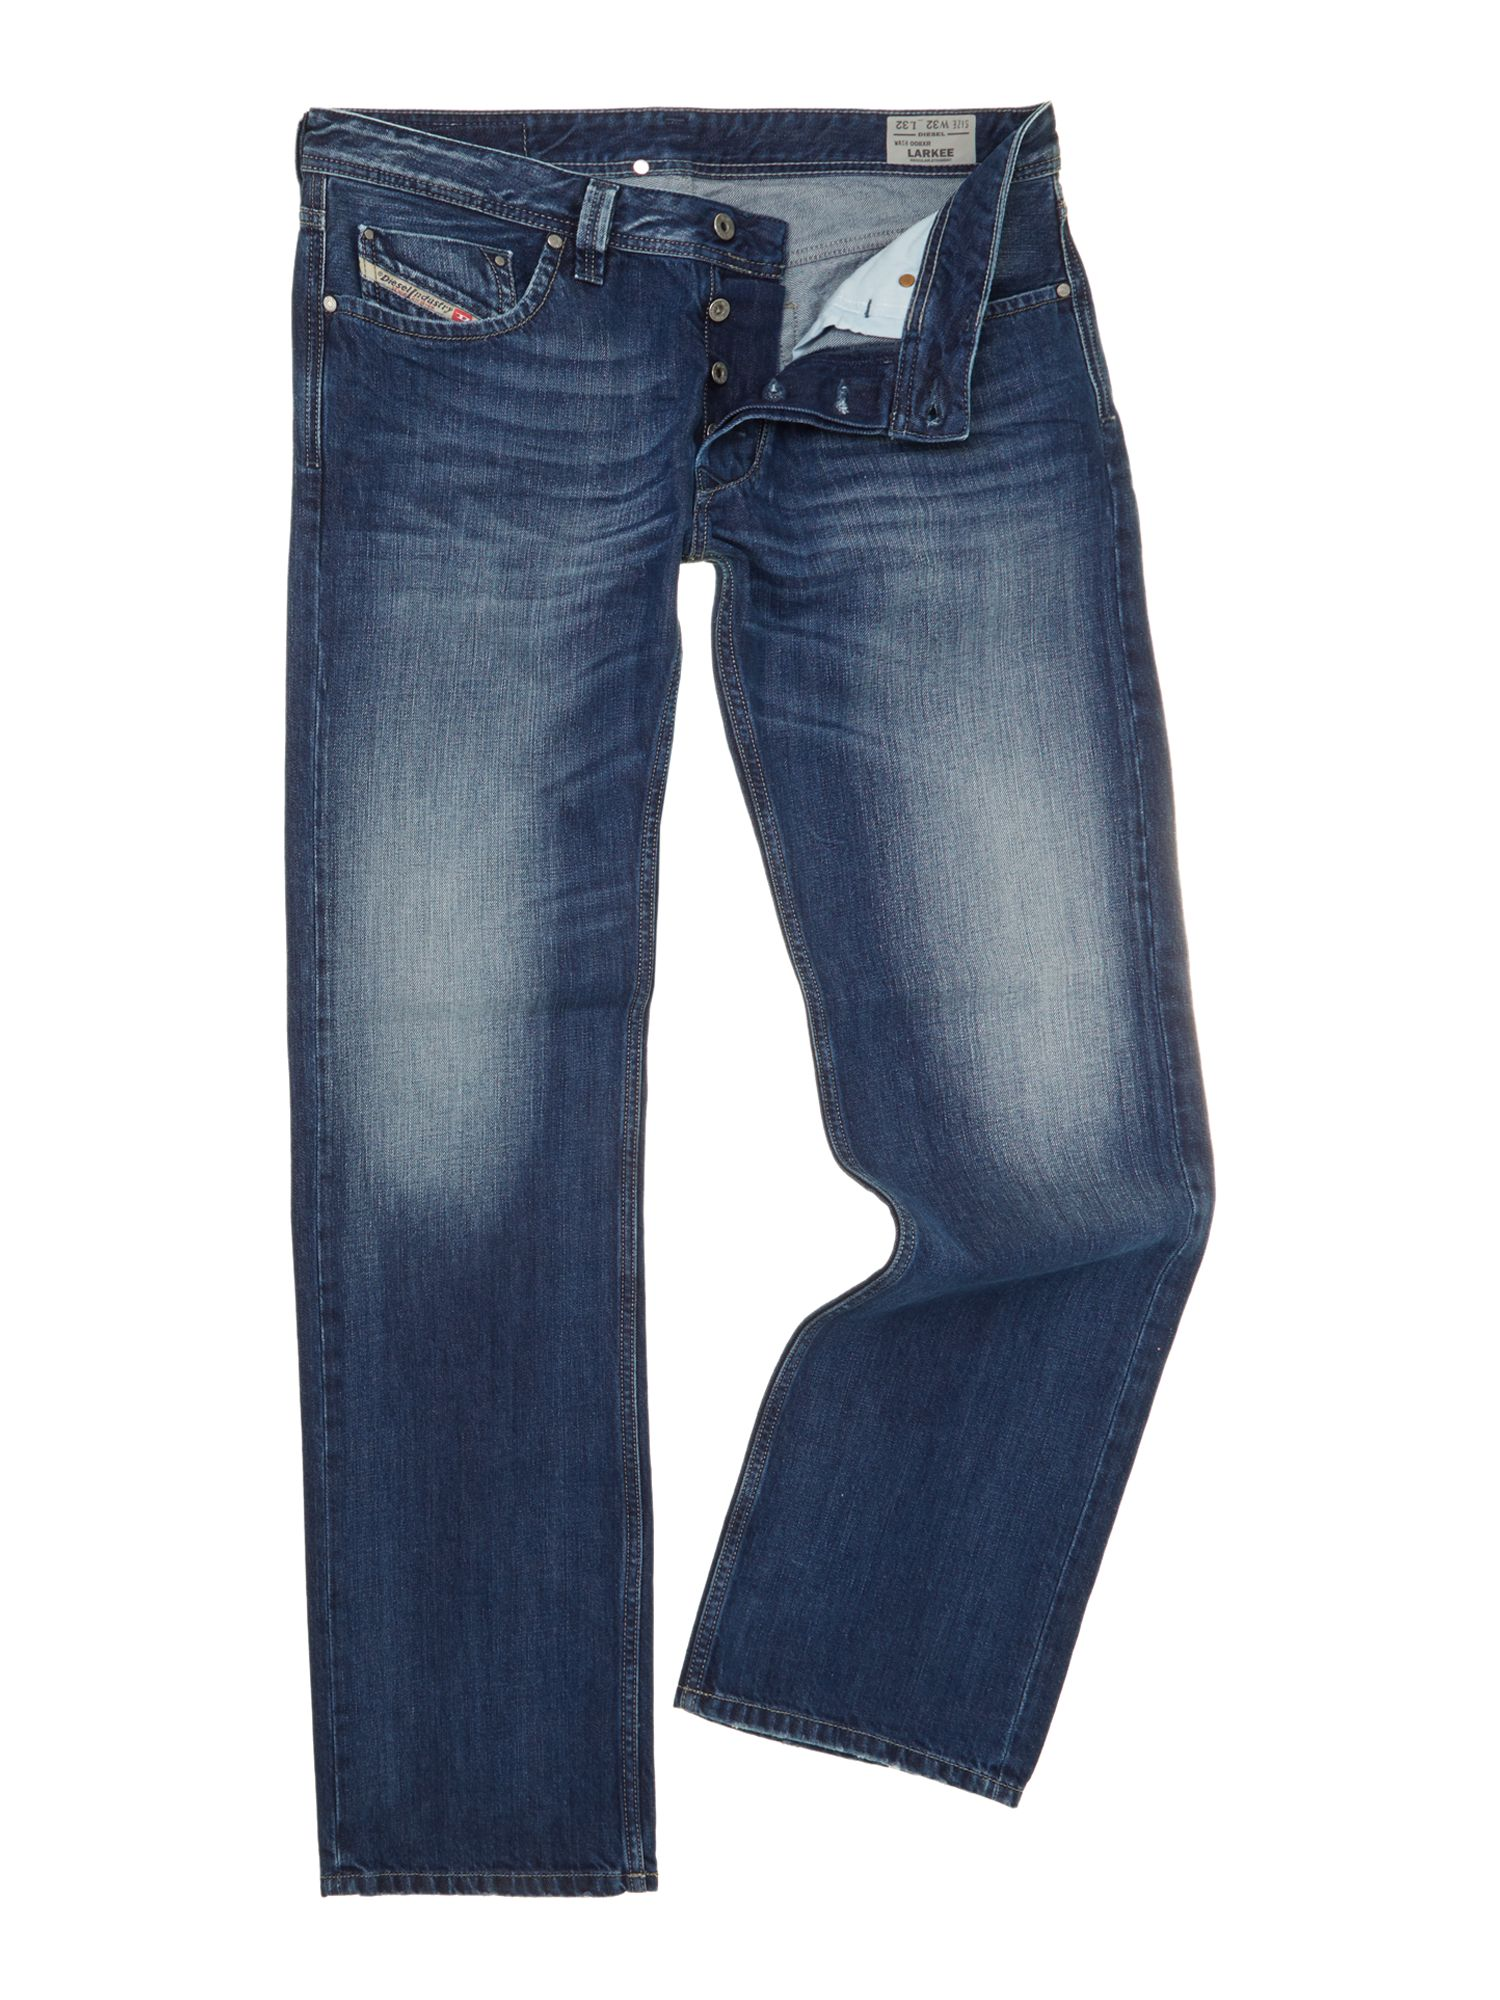 Buy cheap Diesel jeans - compare Menu0026#39;s Trousers prices for best UK deals